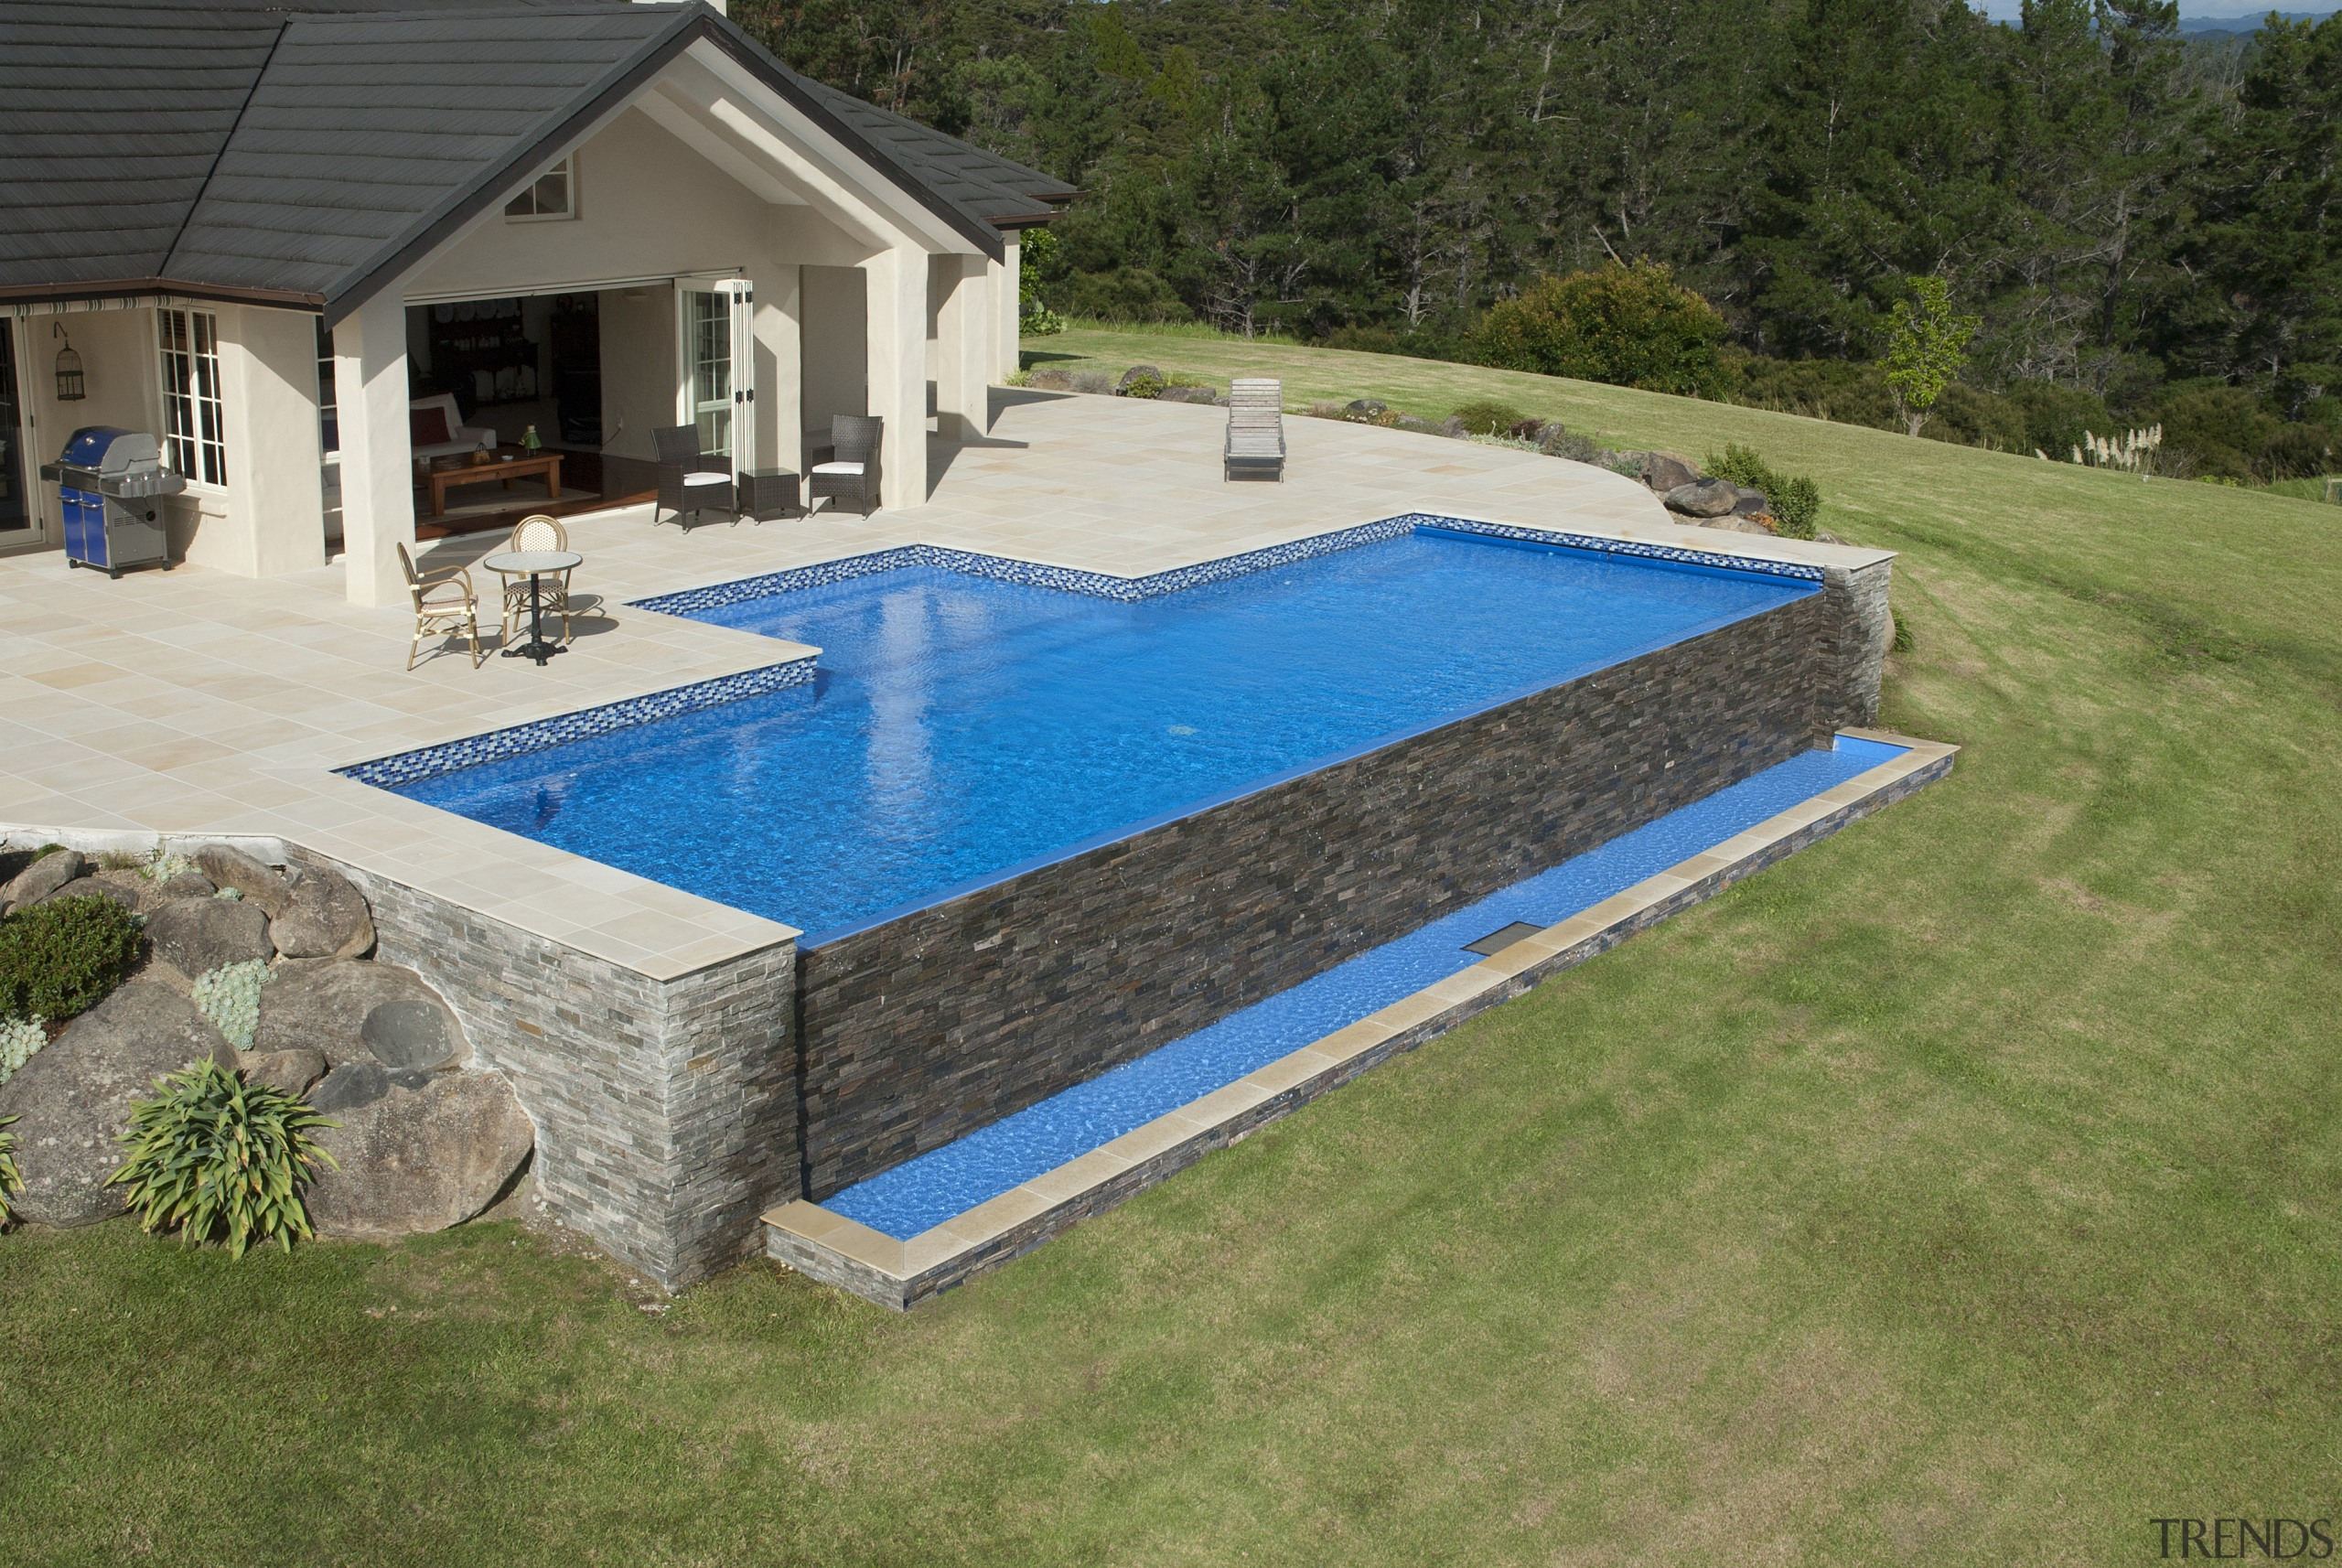 This is a view of the pool designed backyard, grass, leisure, property, real estate, swimming pool, yard, brown